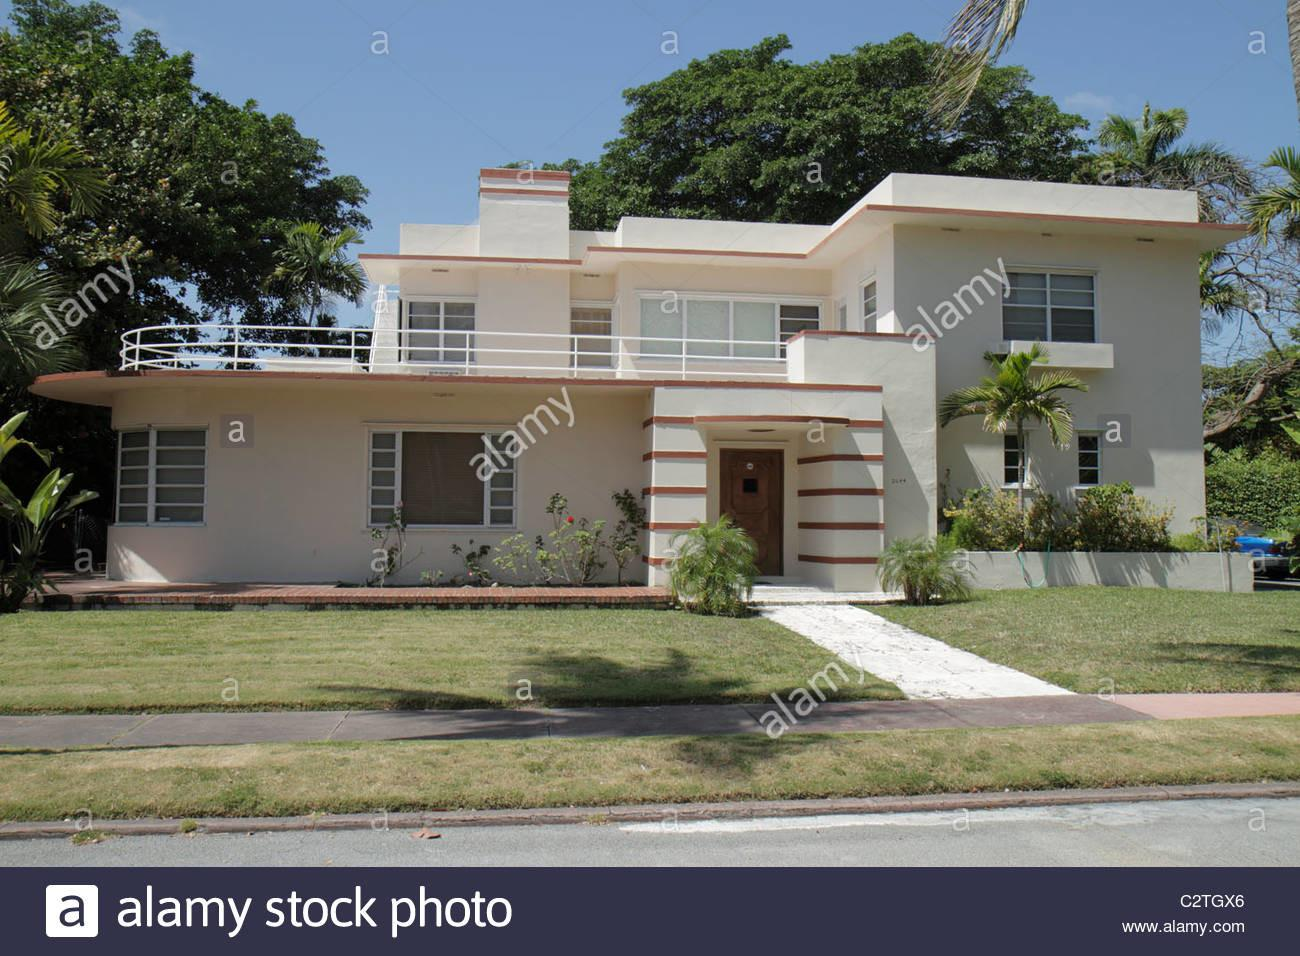 Miami Beach Florida Flamingo Drive Home House Residence